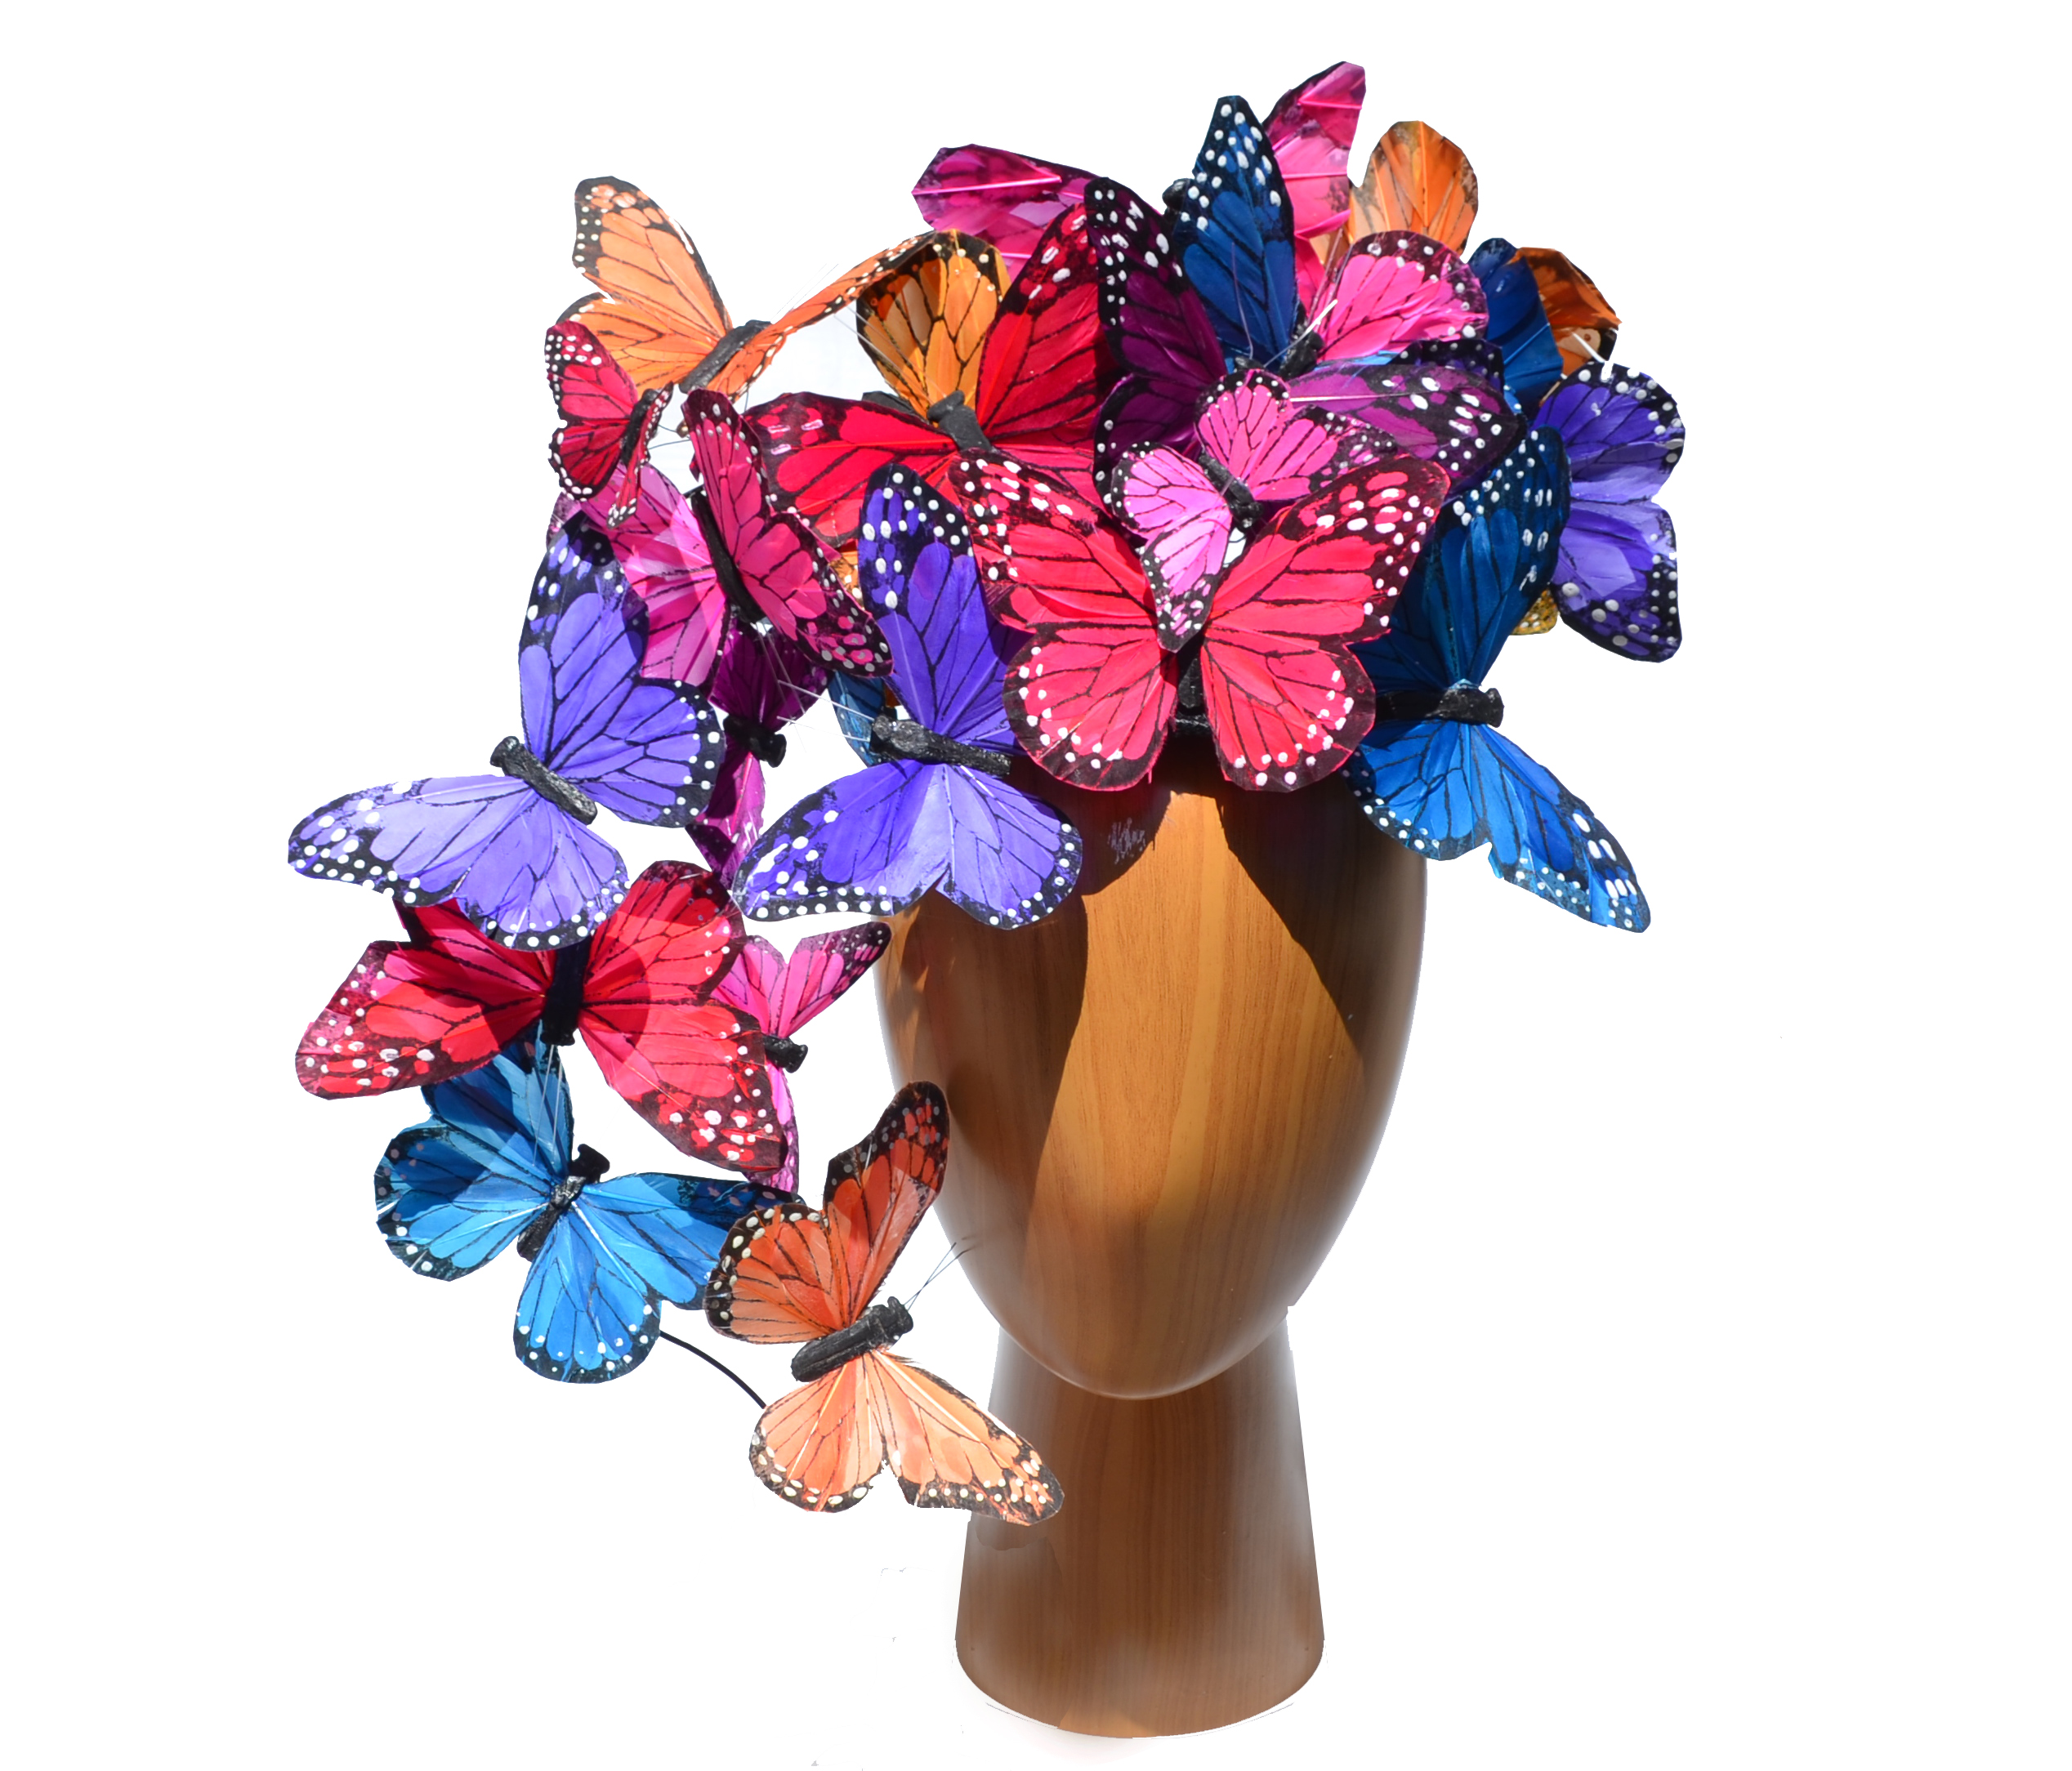 The Madame Butterfly PLUS+ Mixed Color Rainbow Feather Butterfly Swarm Fascinator Hat Hatinator